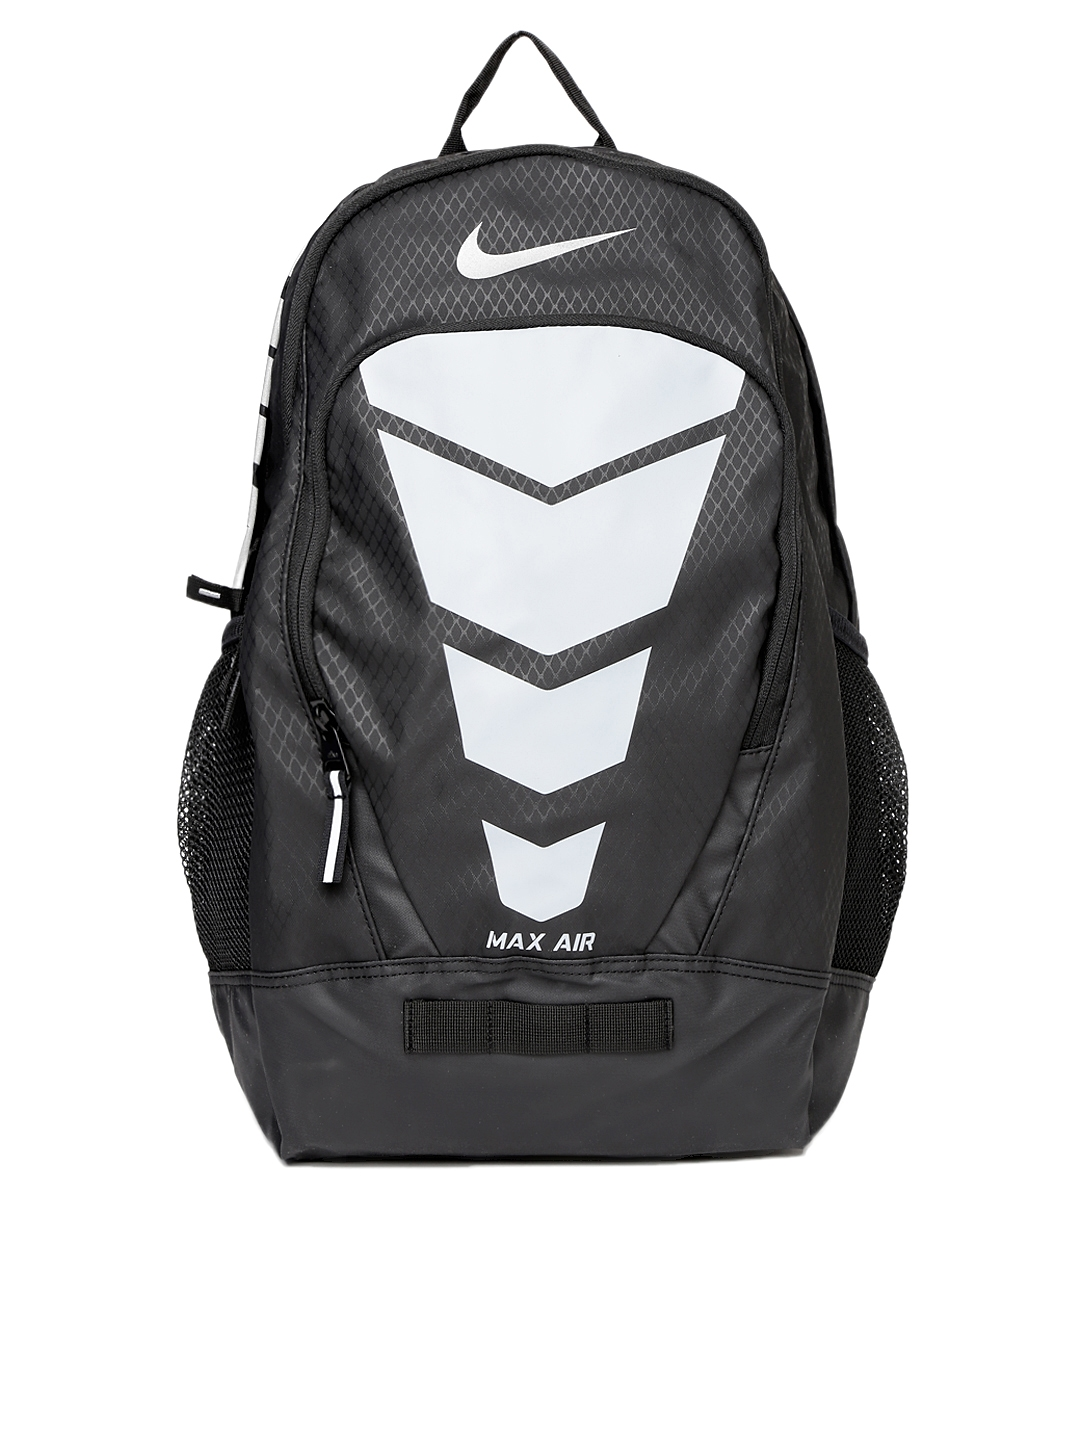 factory authentic b4670 3e2dc Buy Nike Unisex Black   Grey Max Air Vapor Backpack - Backpacks for Unisex  1110481   Myntra